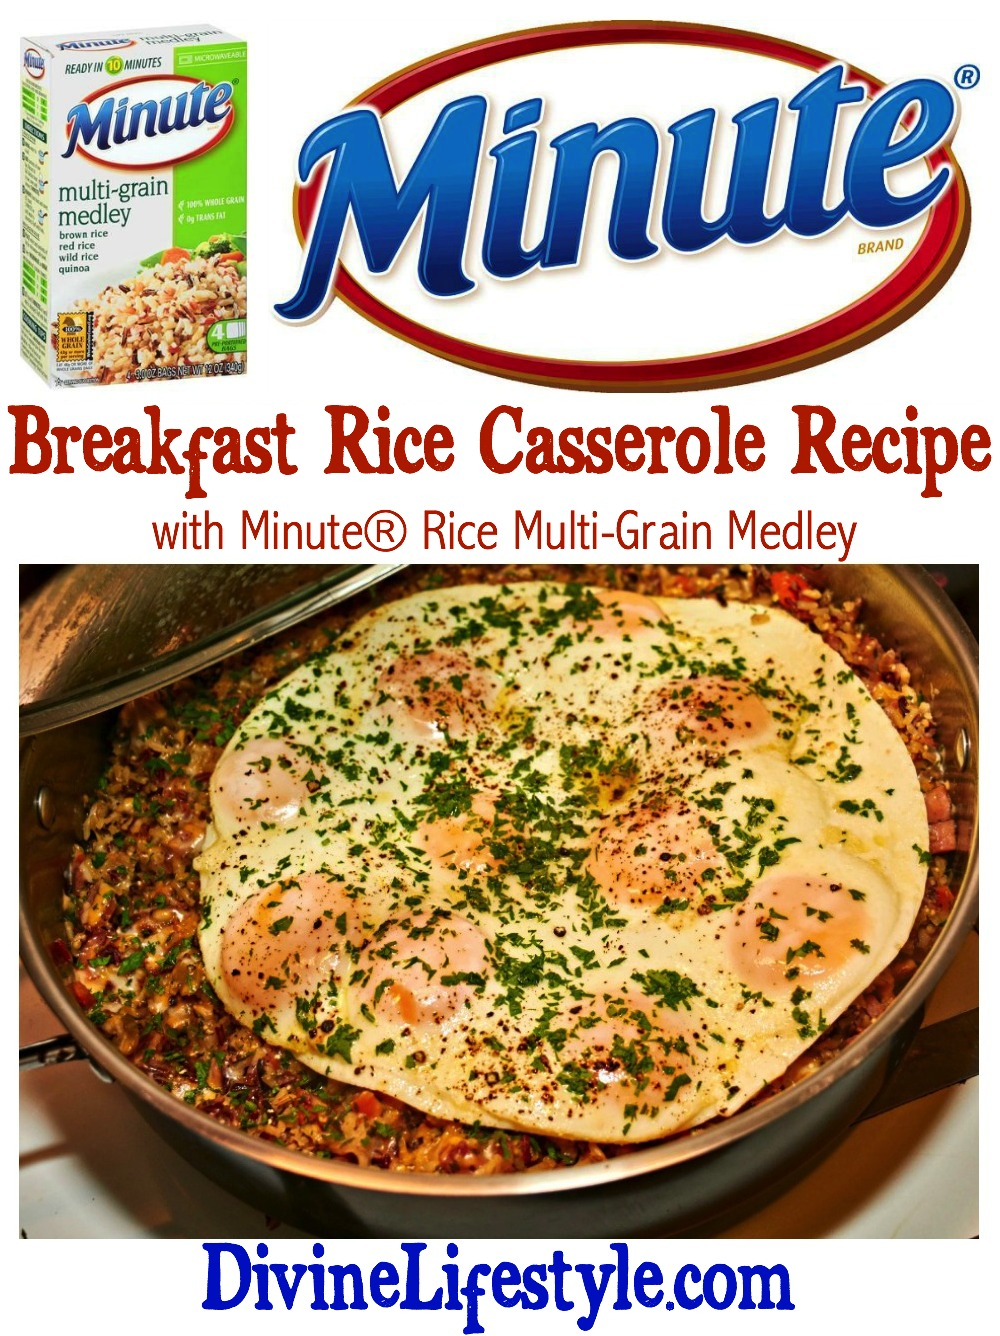 MInute Rice Breakfast Casserole Collage